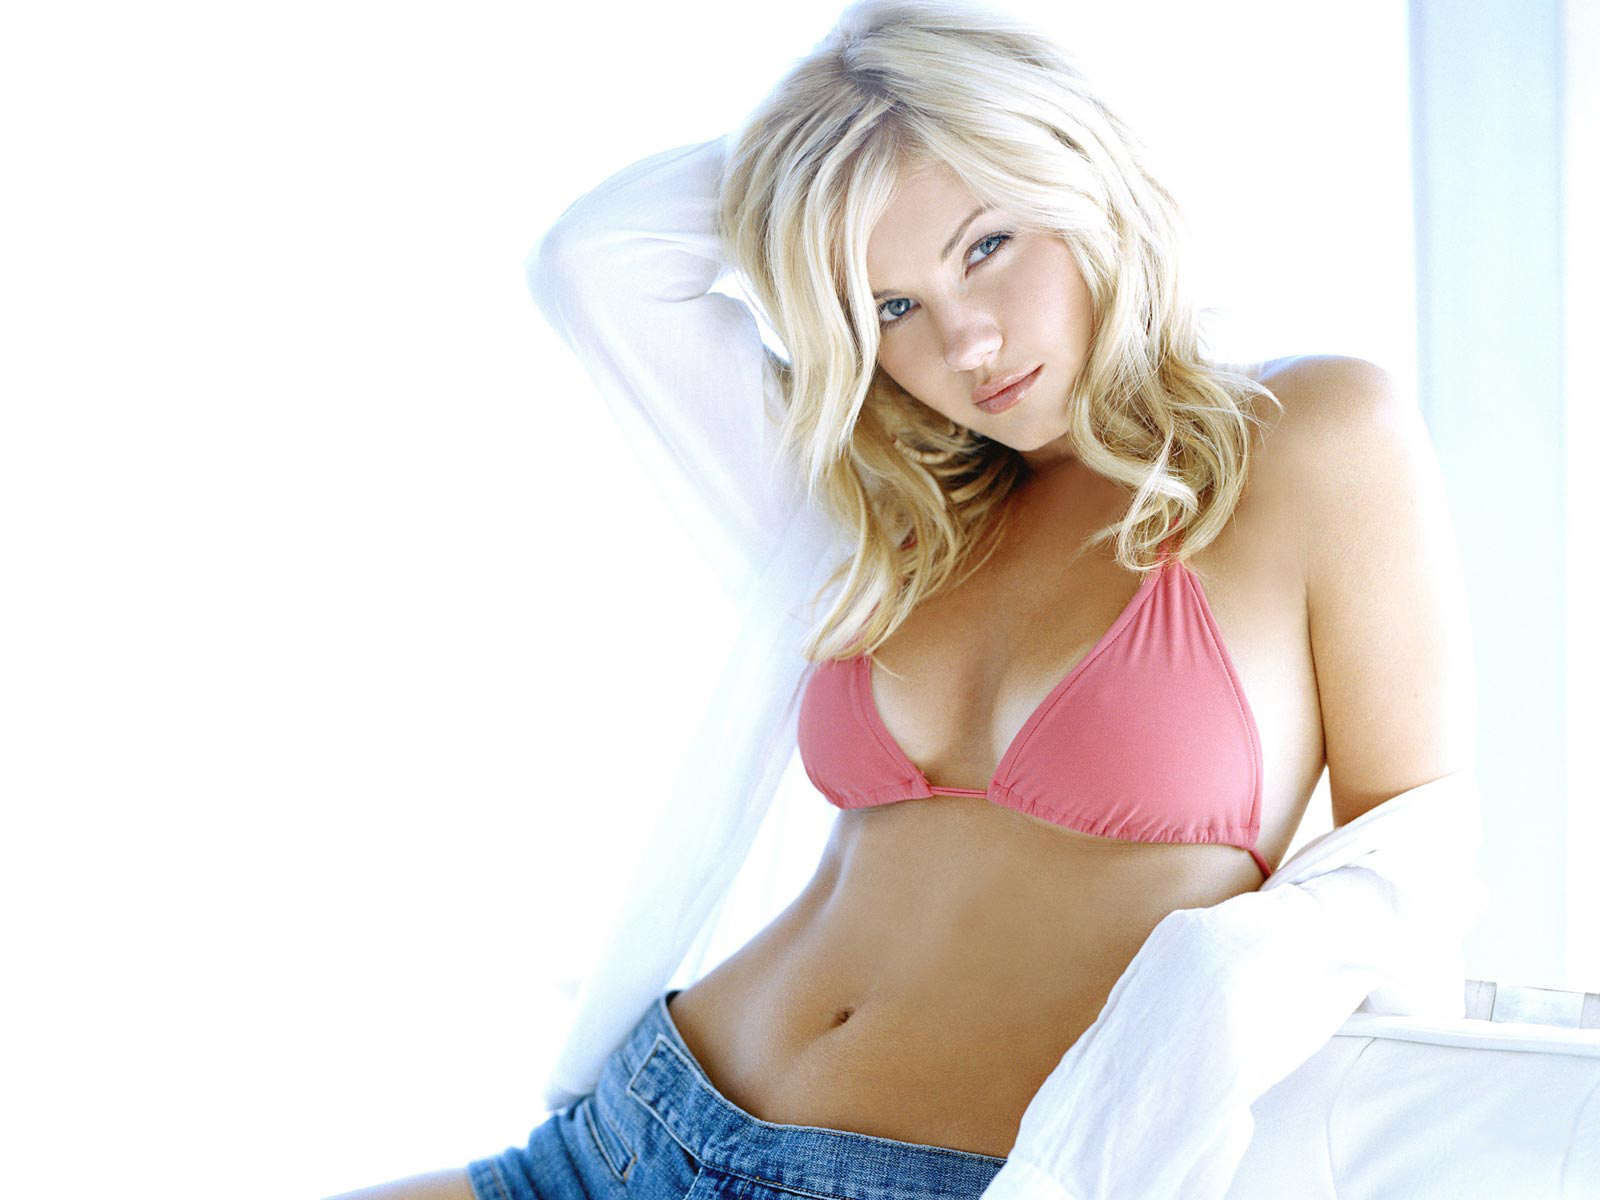 elisha cuthbert desktop wallpapers - Elisha Cuthbert Hot HD Wallpapers YouTube